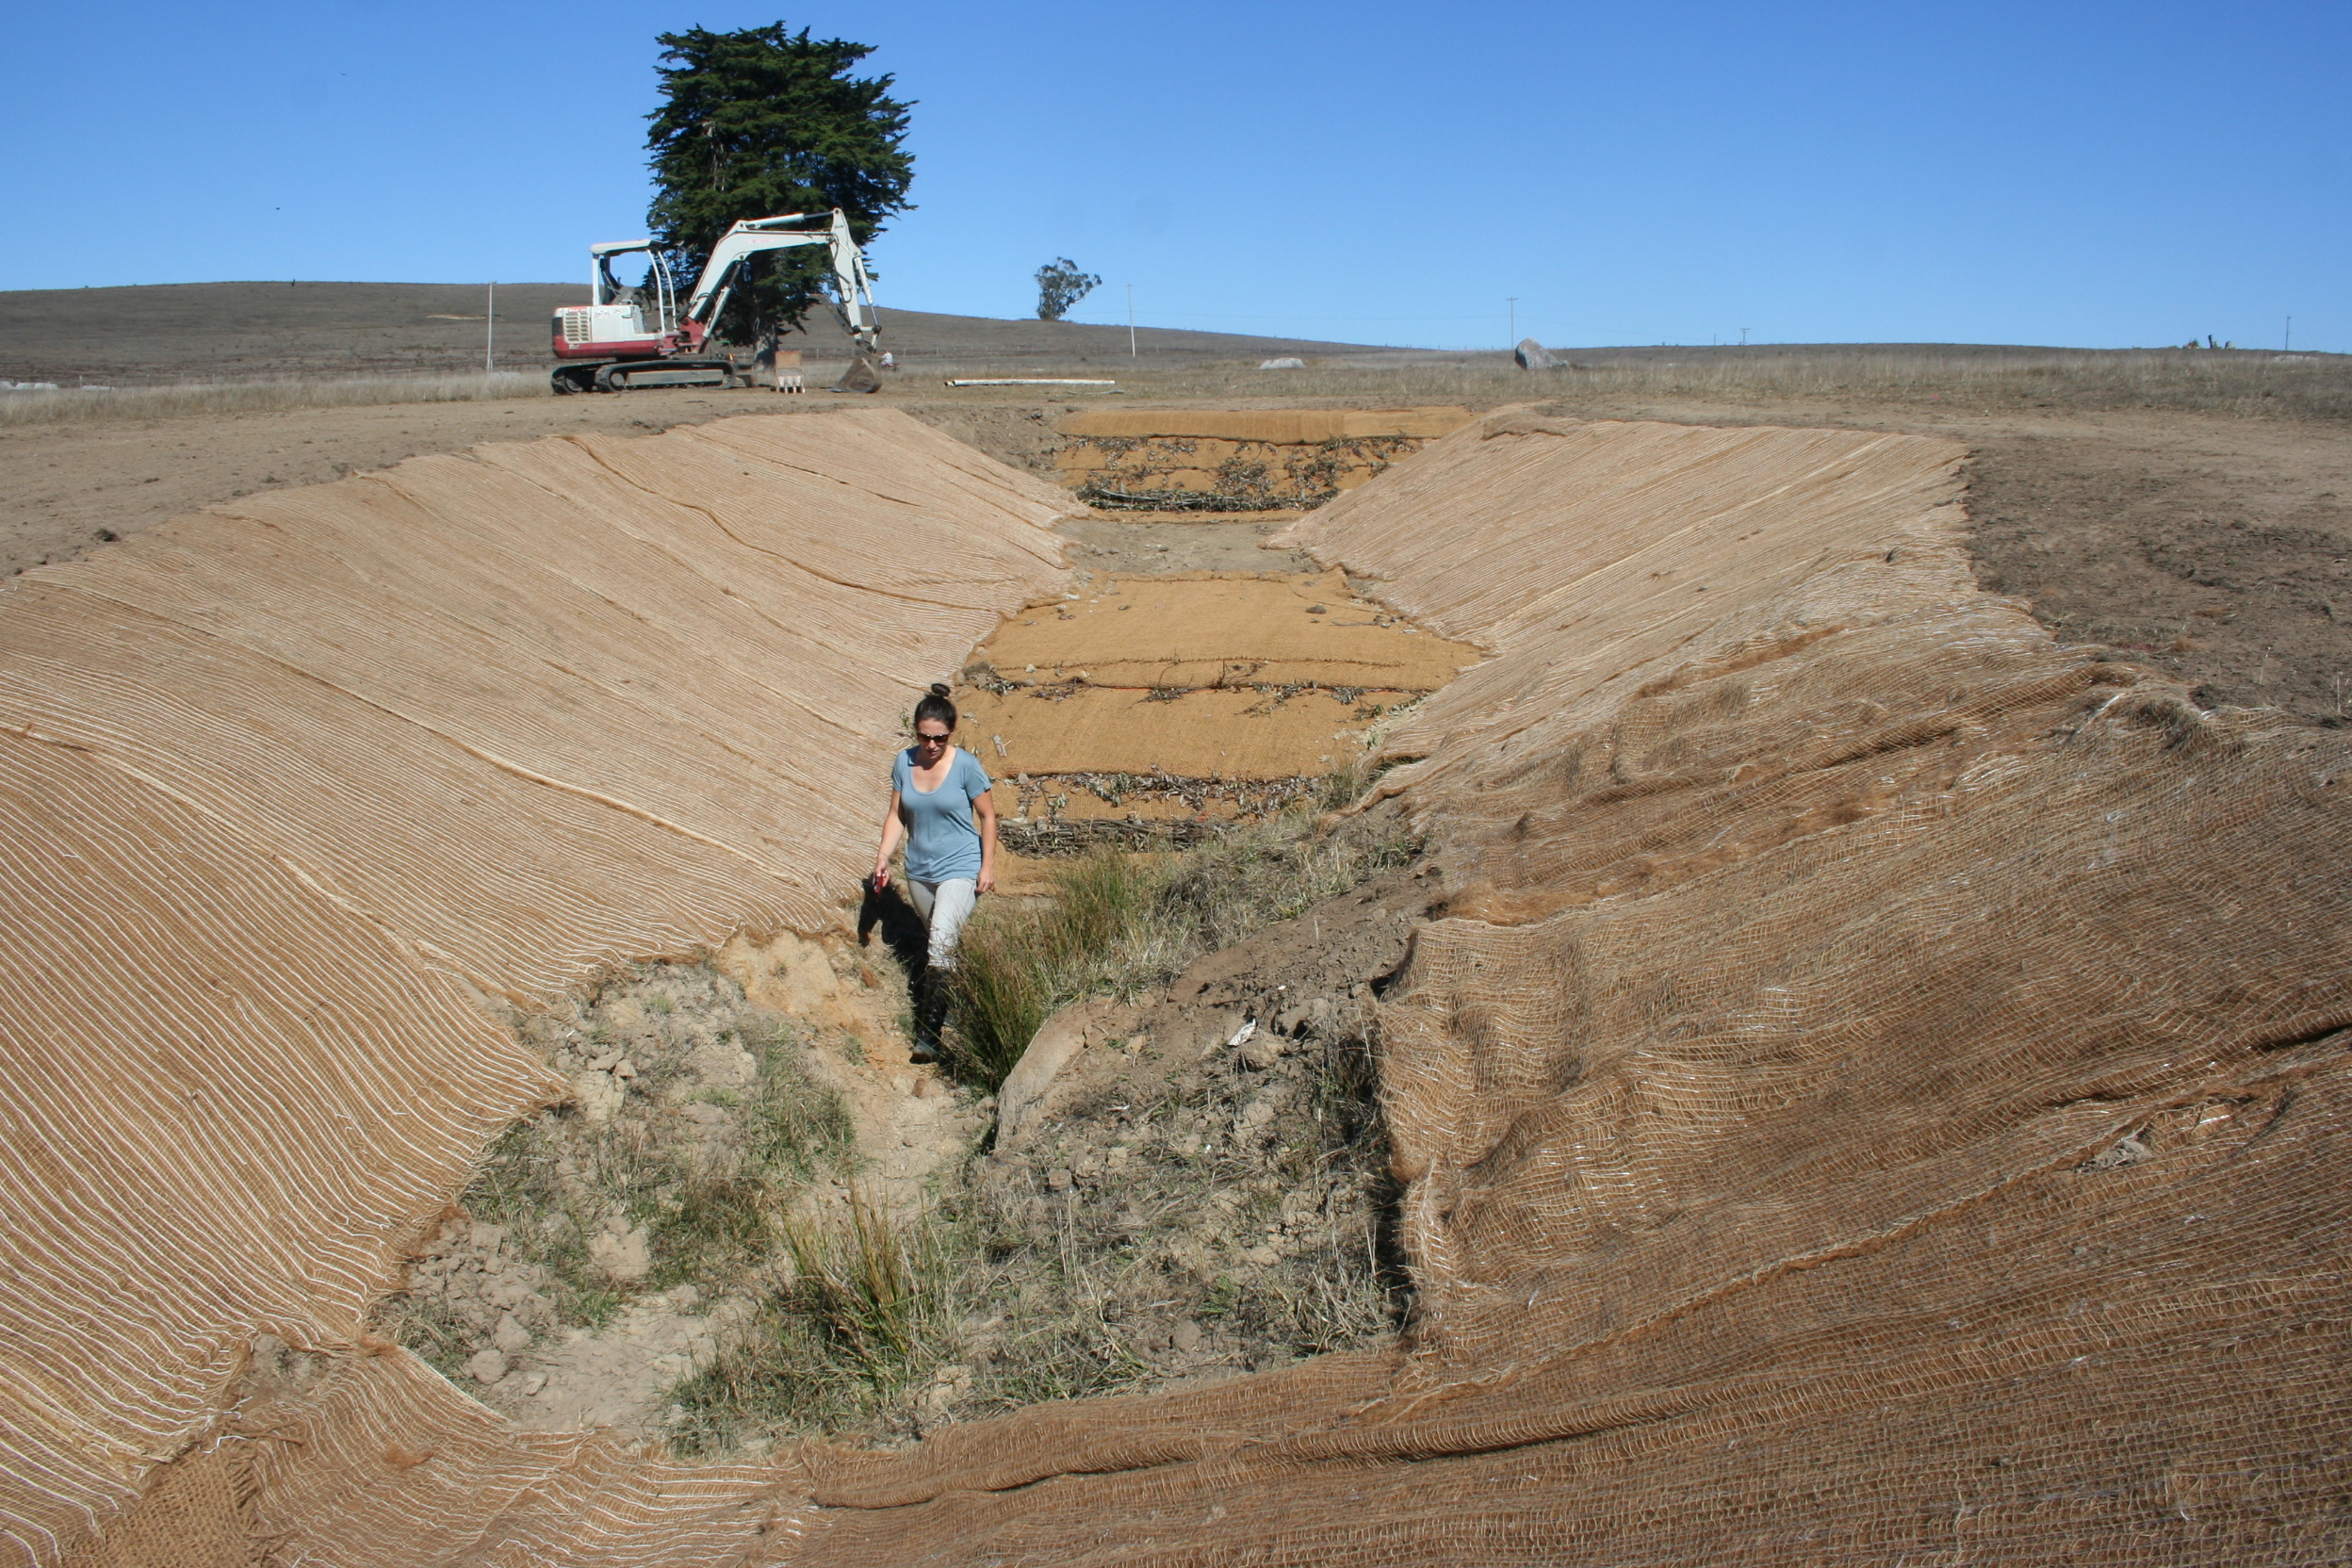 On a blue-sky day, a large, sparse landscape stretches out, covered in brown grasses in the background. In the foreground, a 10-foot-wide, 50-foot-long gully with sloping sides is carved out. A person in a T-shirt and boots walks along the bottom. There are burlap-type fabric panels laid out overlapping each other along the sides and bottom of the gully, and next to the gully on flat ground by a lone tree rests a mid-sized white excavator.